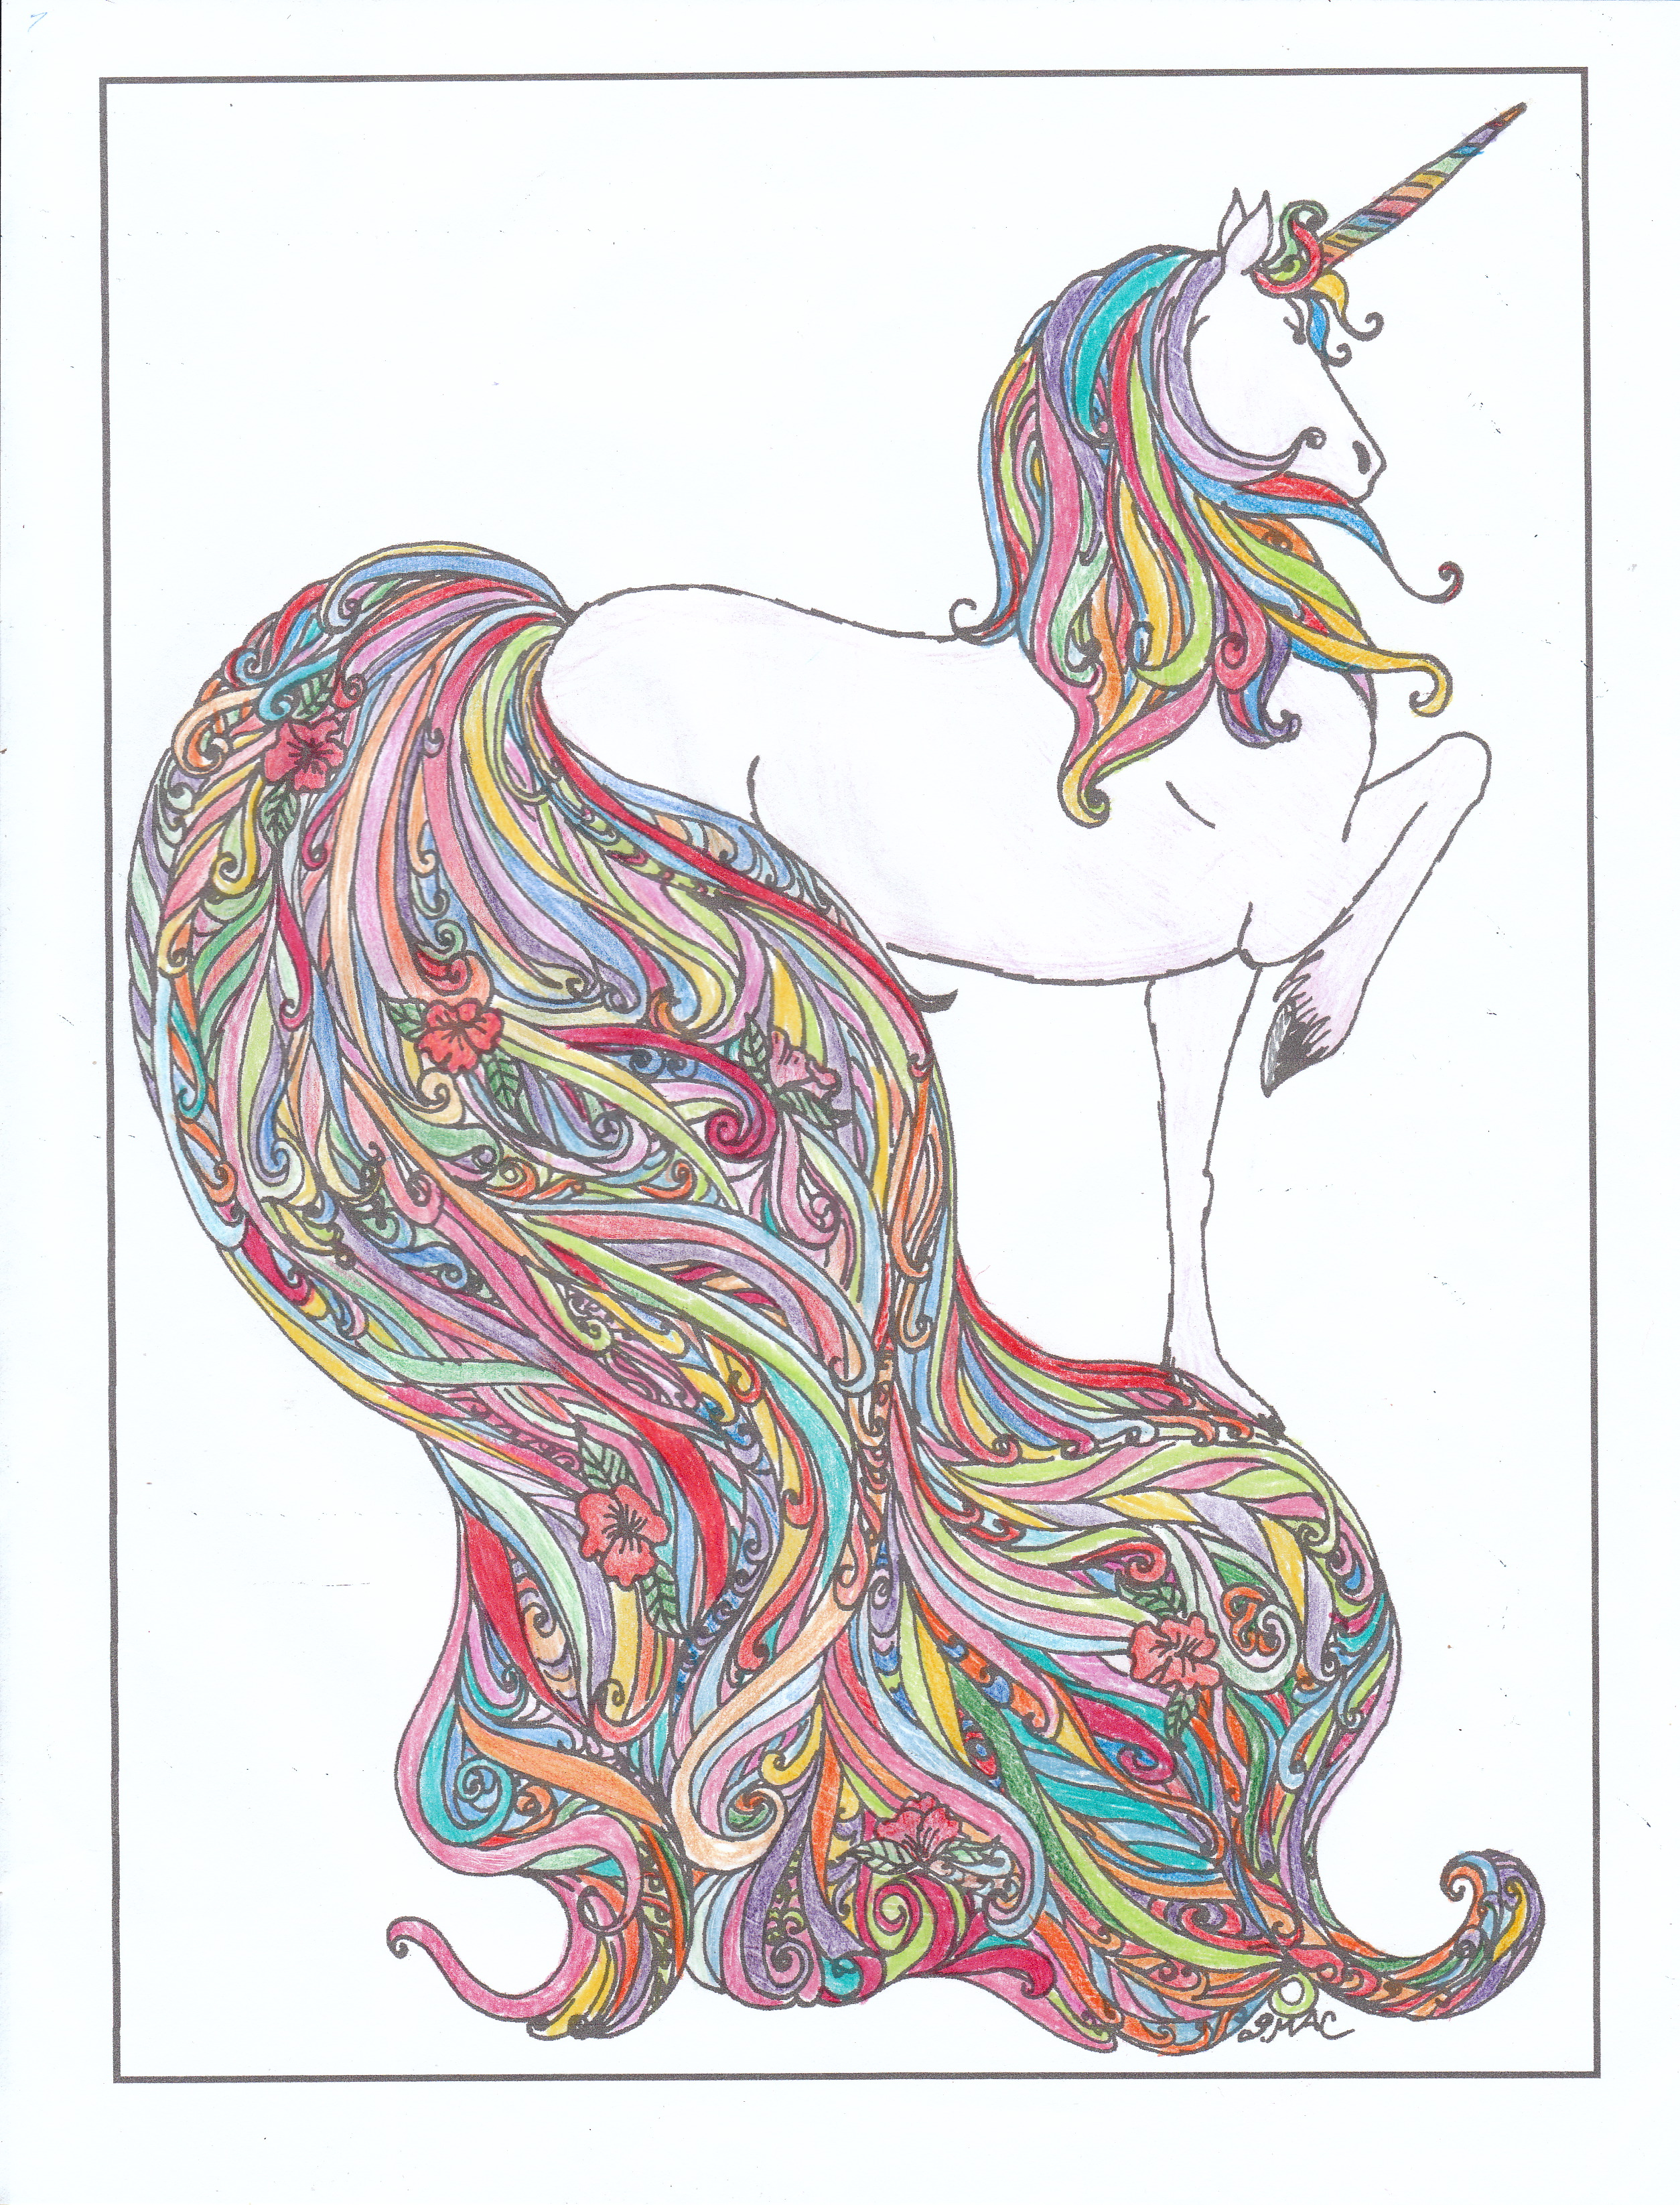 Coloring pages unicorn rainbow - Realistic Unicorn Coloring Pages Unicorn Rainbow Coloring Page Instant Download Coloring Page Printable Coloring